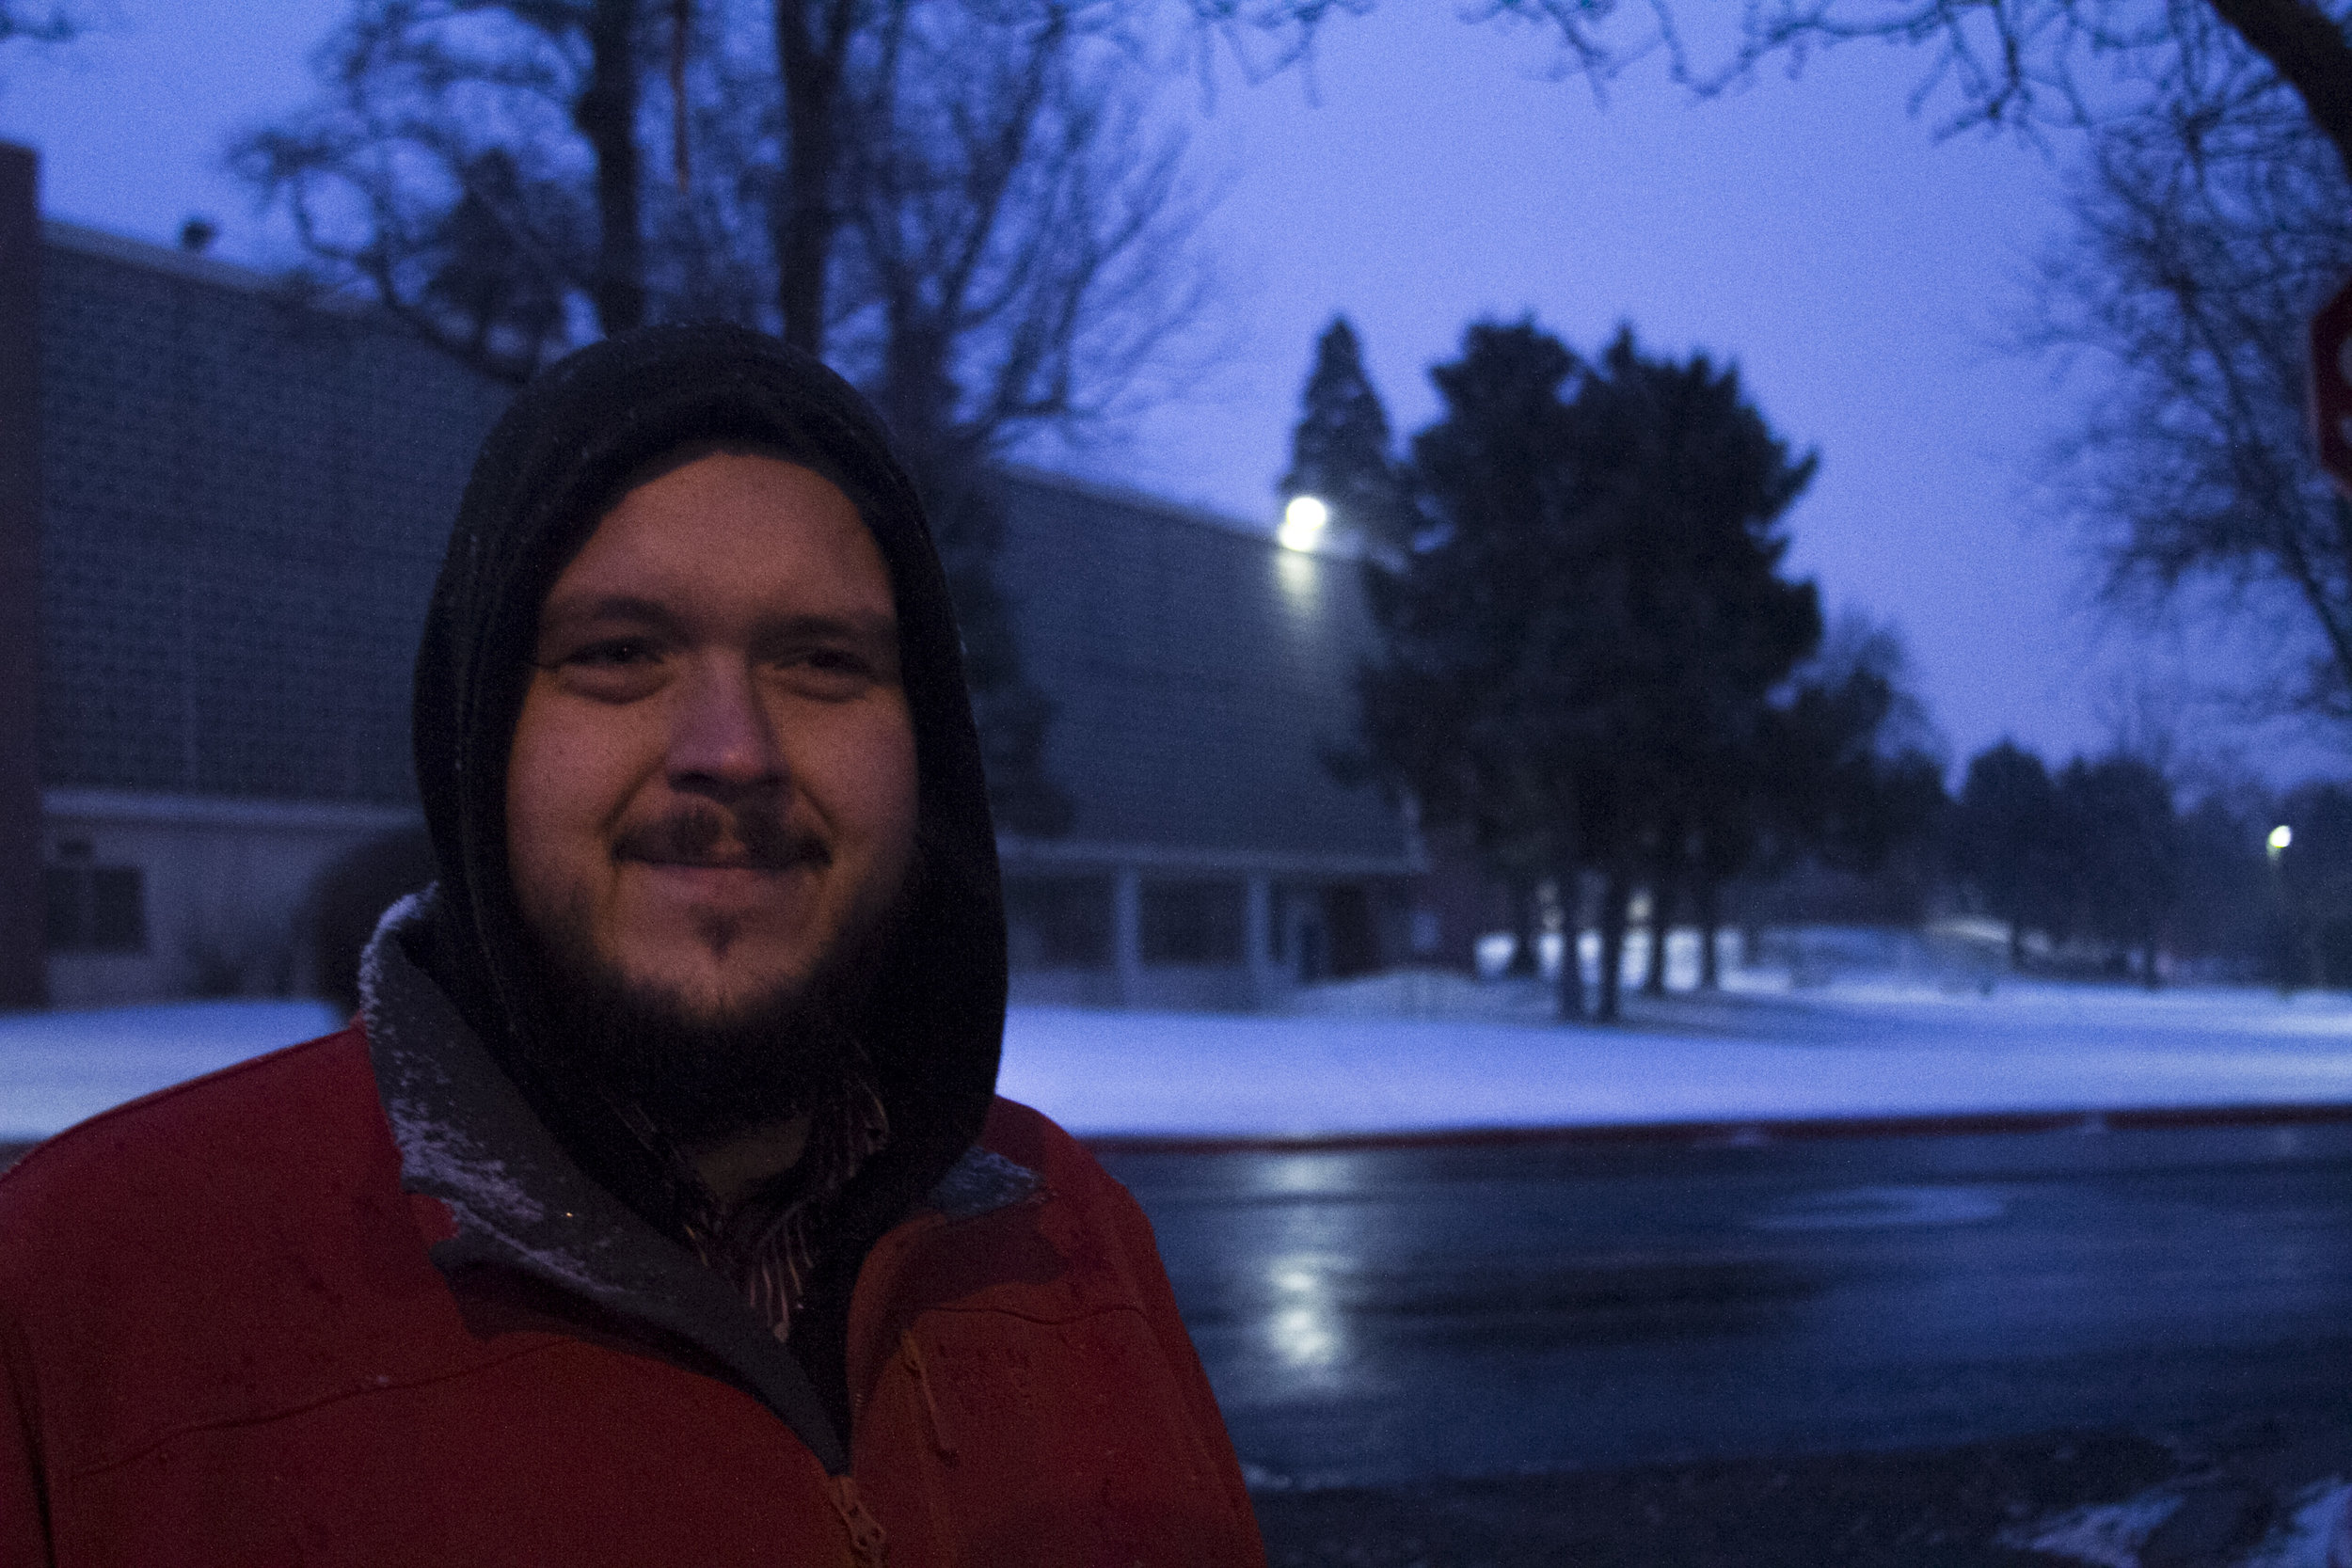 Peralta who has been with Food Not Bombs for about three years says his chapter began in conjunction with the brief Occupy Reno movement in 2011 and is now made up of around 30-45 members or recruits.Photo and Reporting by Jordan Gearey for Our Town Reno.